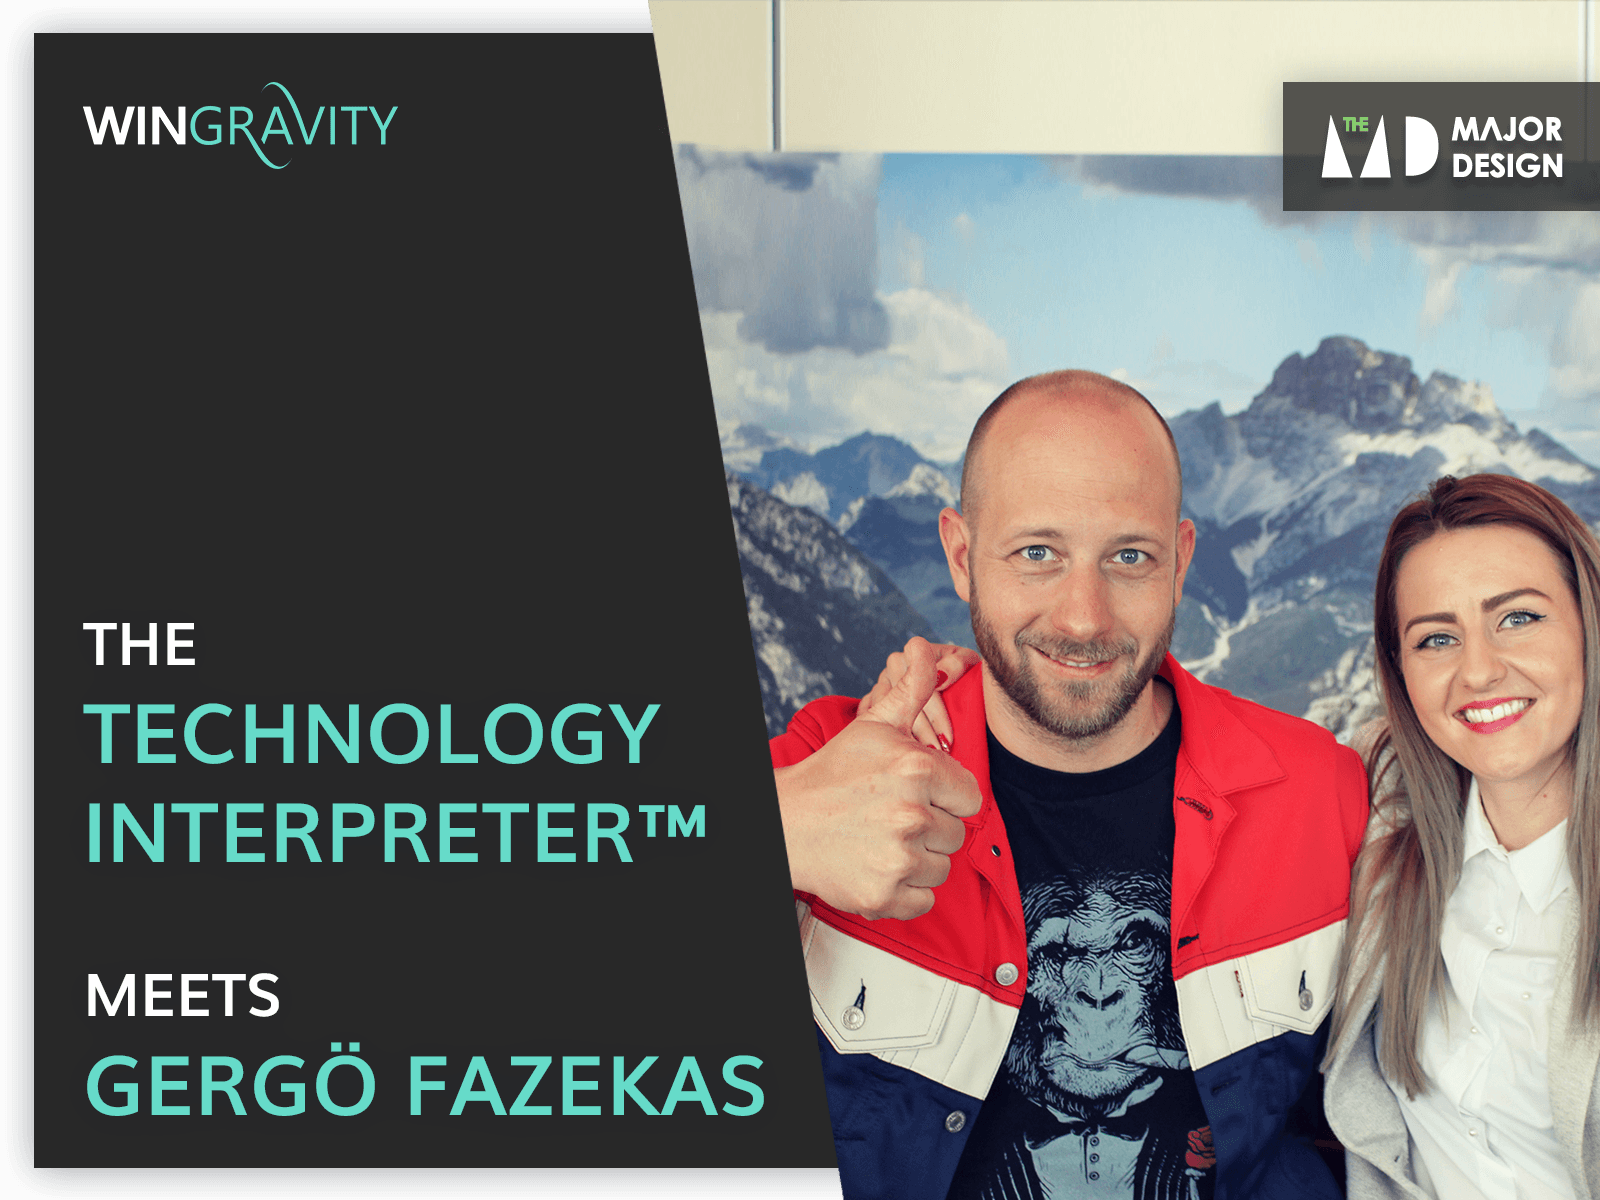 The Technology Interpreter Meets Gergo Fazekas